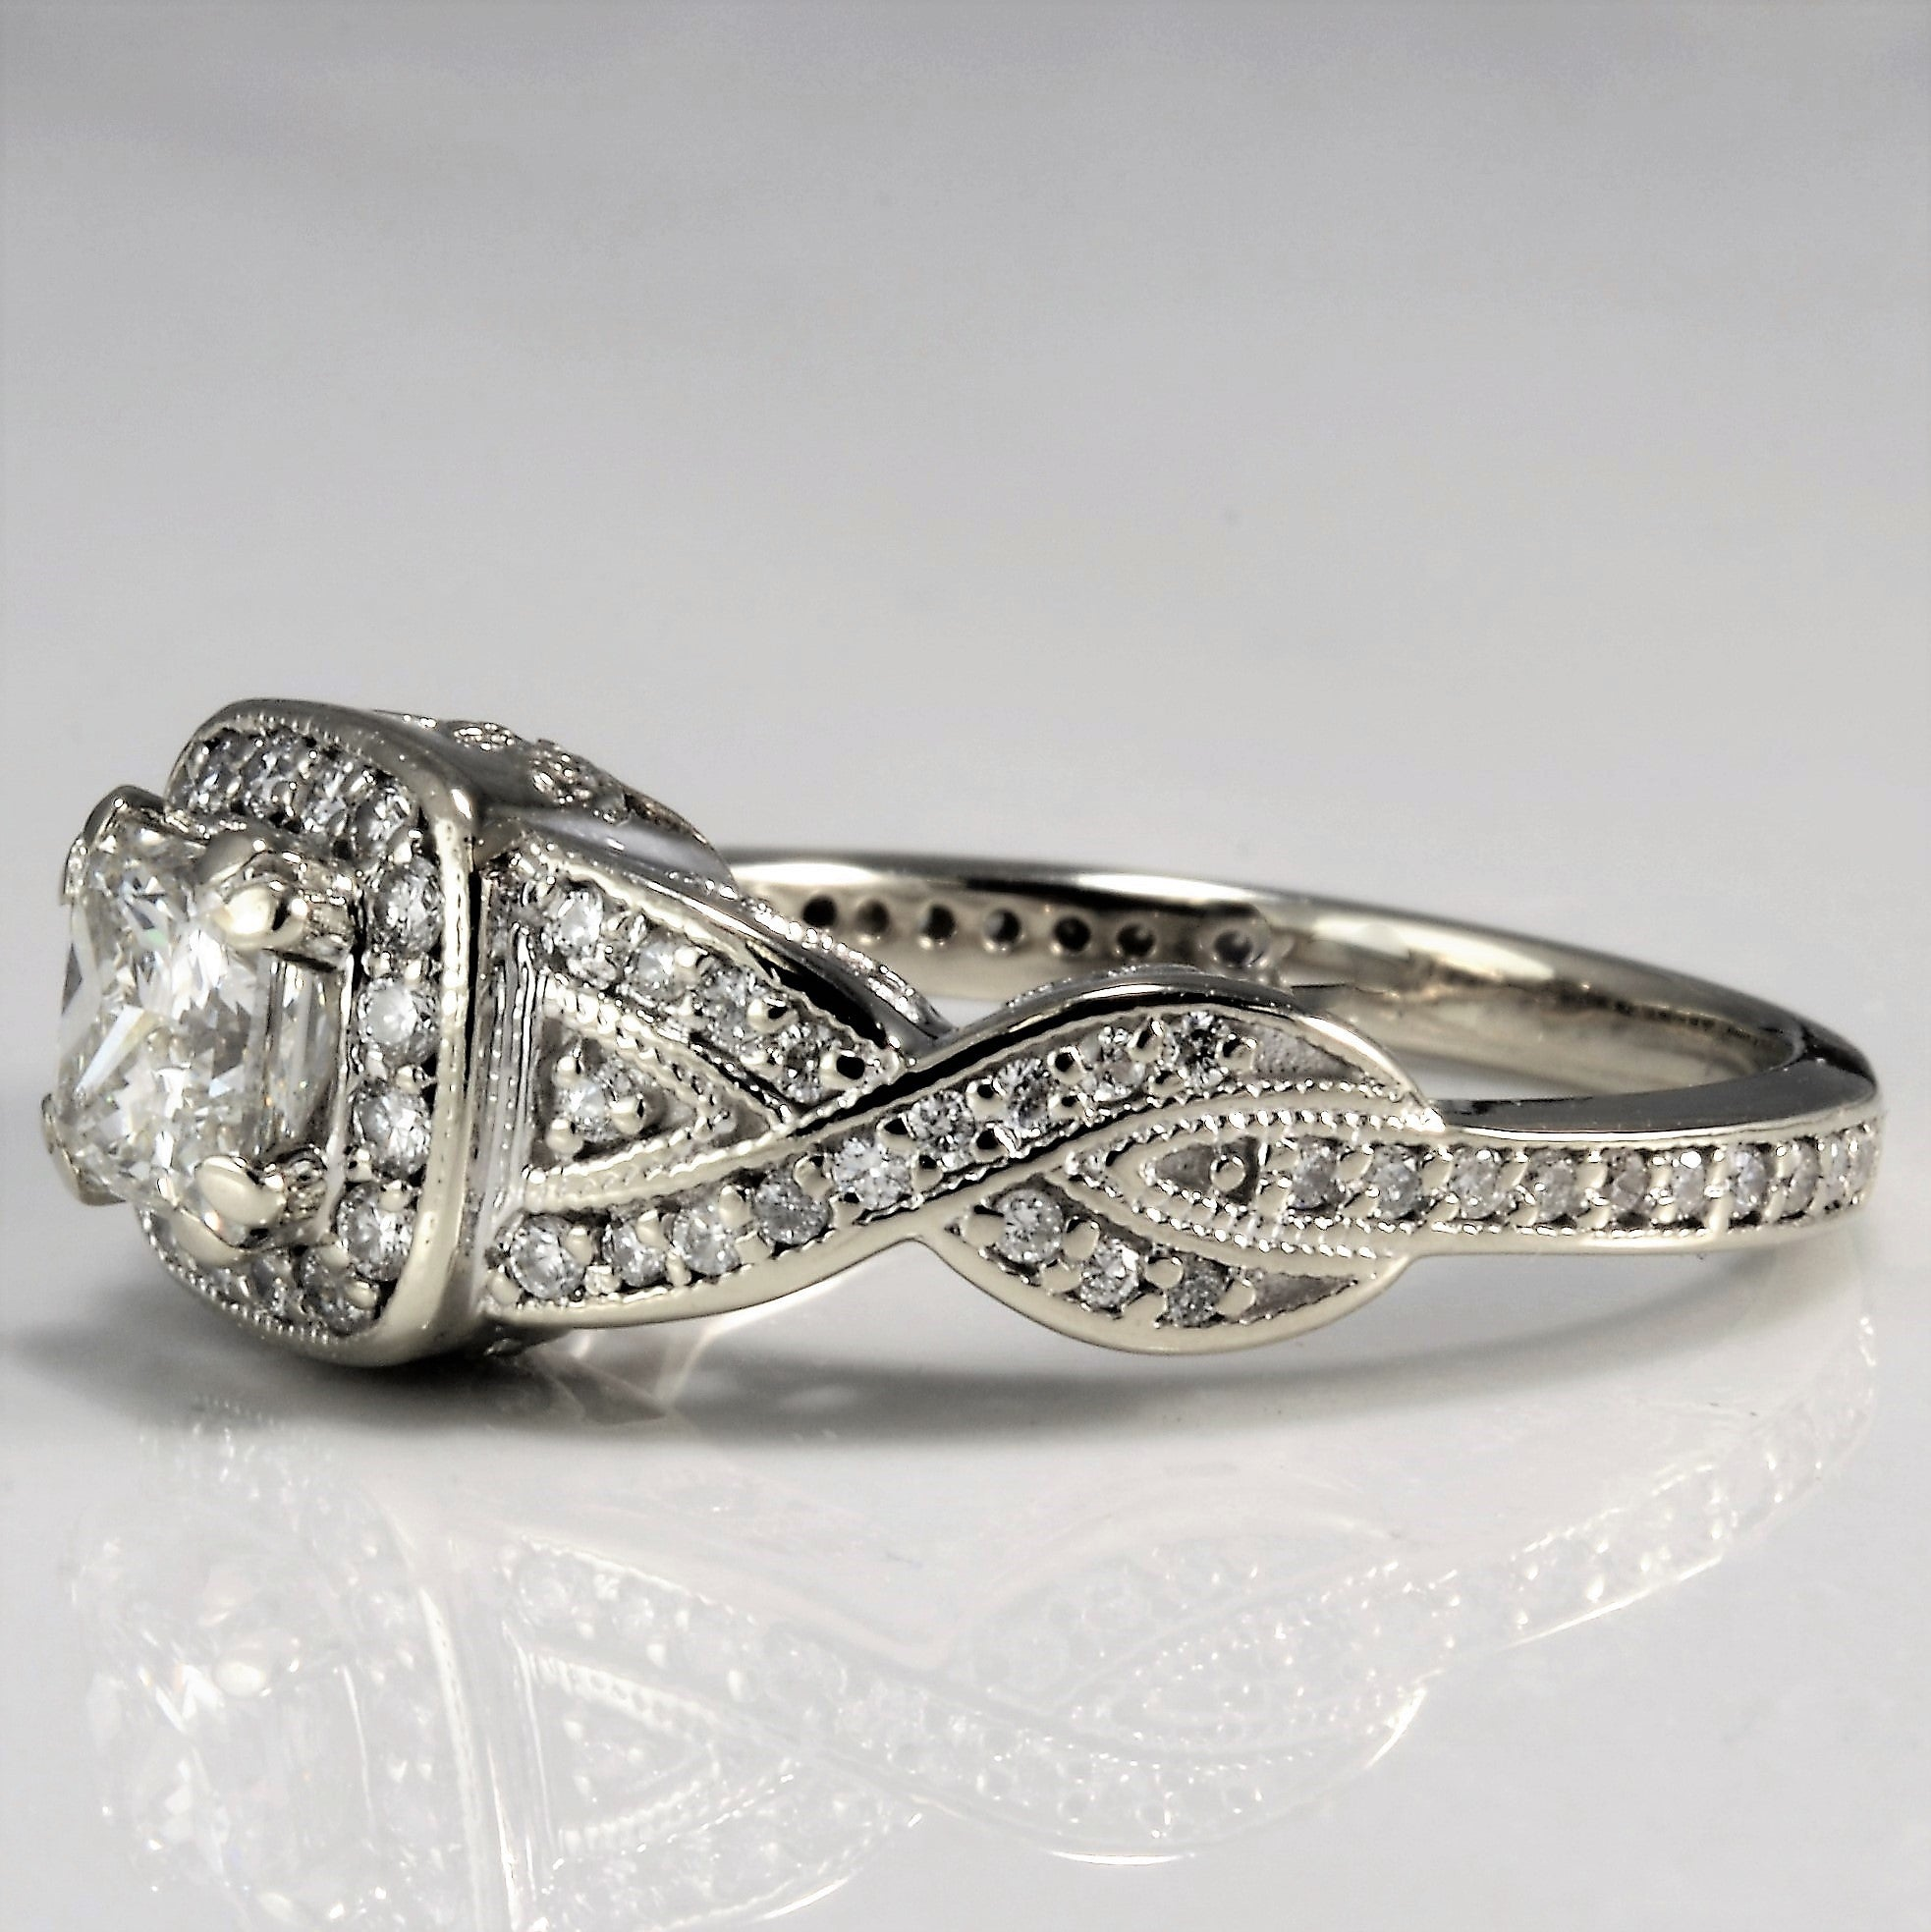 rings bridal engagement stone glenda ring full set band wedding ebay itm